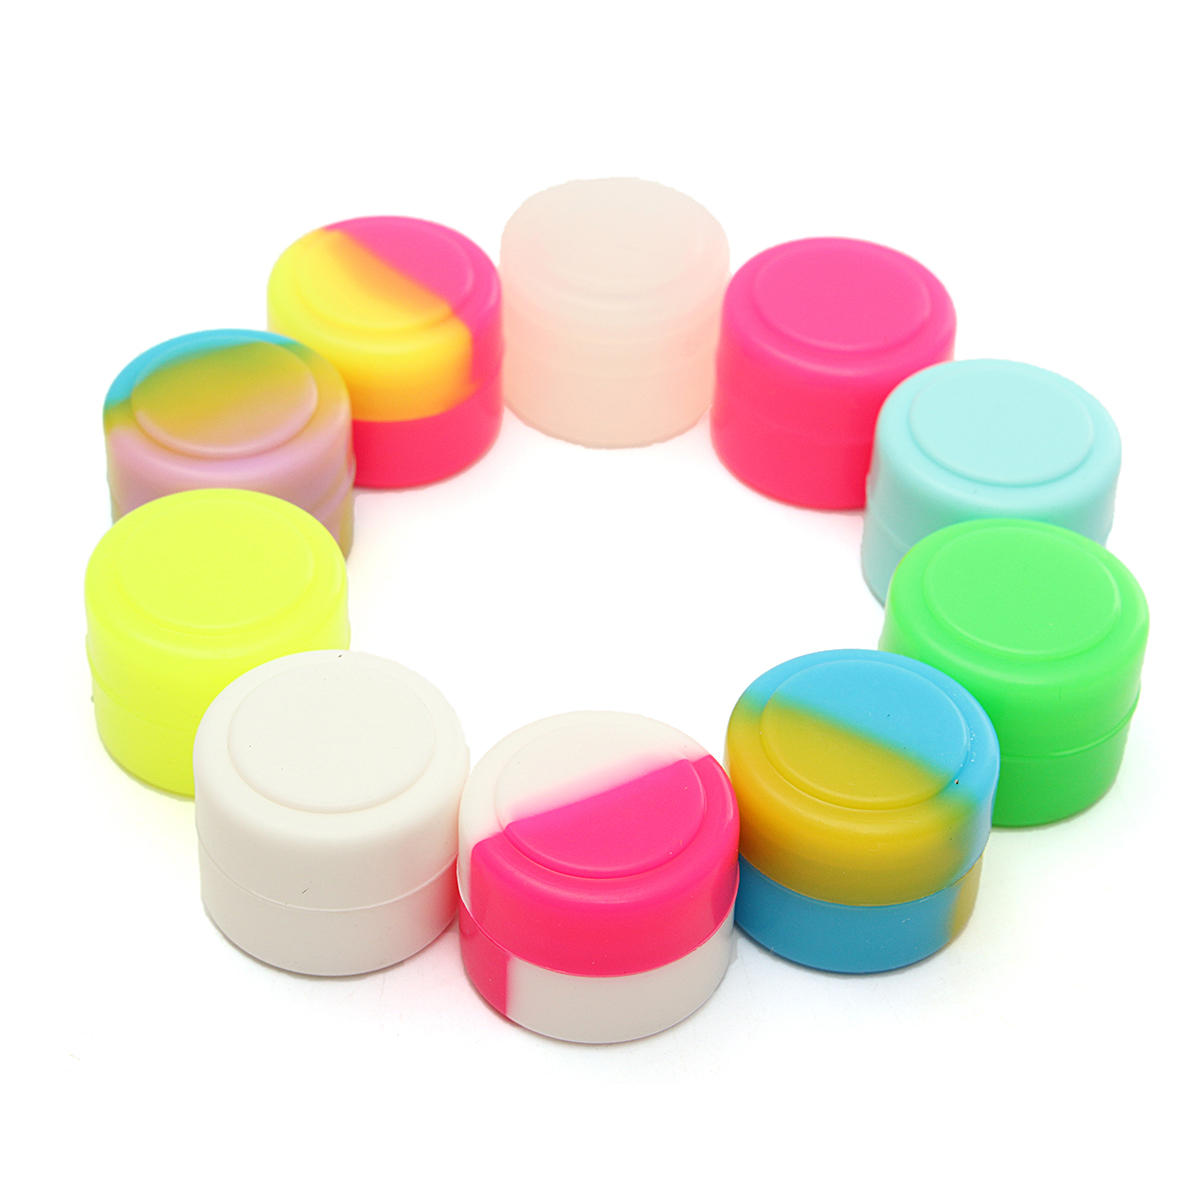 100 Pcs 2ML Colorful Round Silicone Non Stick Concentrate Containers Jar Storage Box